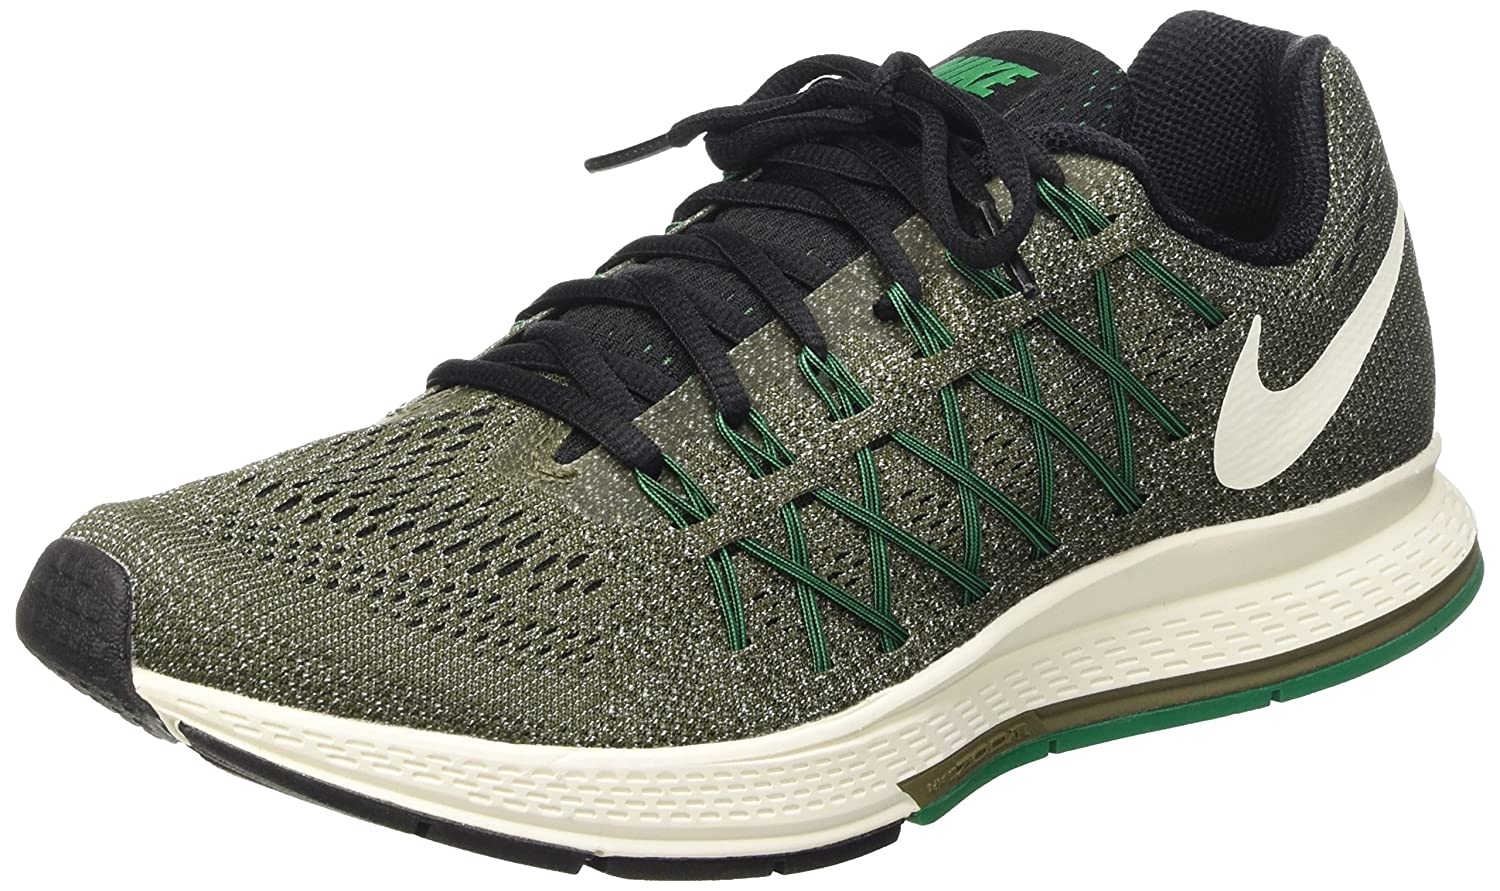 low priced 2e963 974f9 Nike Men s Air Zoom Pegasus 32 Running Shoes, Multicolor-Mehrfarbig (Cargo  Khaki Sail-LCD Green-Blk), 6.5  Amazon.co.uk  Shoes   Bags